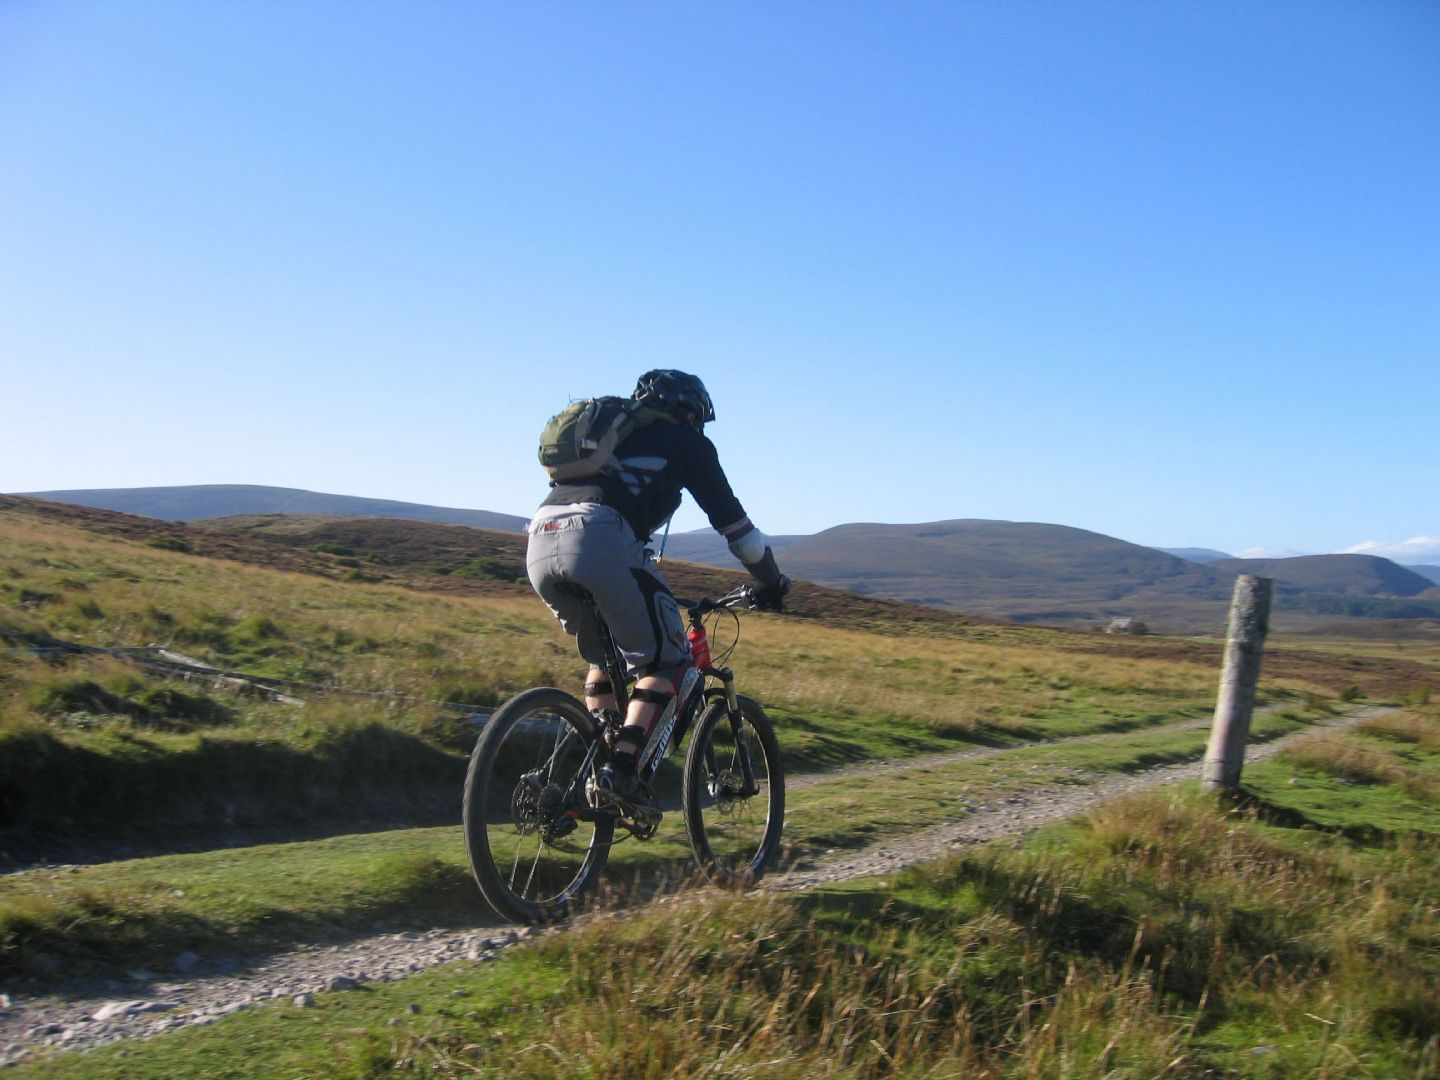 peaceful-guided-mountain-bike-adventure-scotland.jpg - Scotland - Celtic Crossing - Guided Mountain Bike Holiday - Mountain Biking